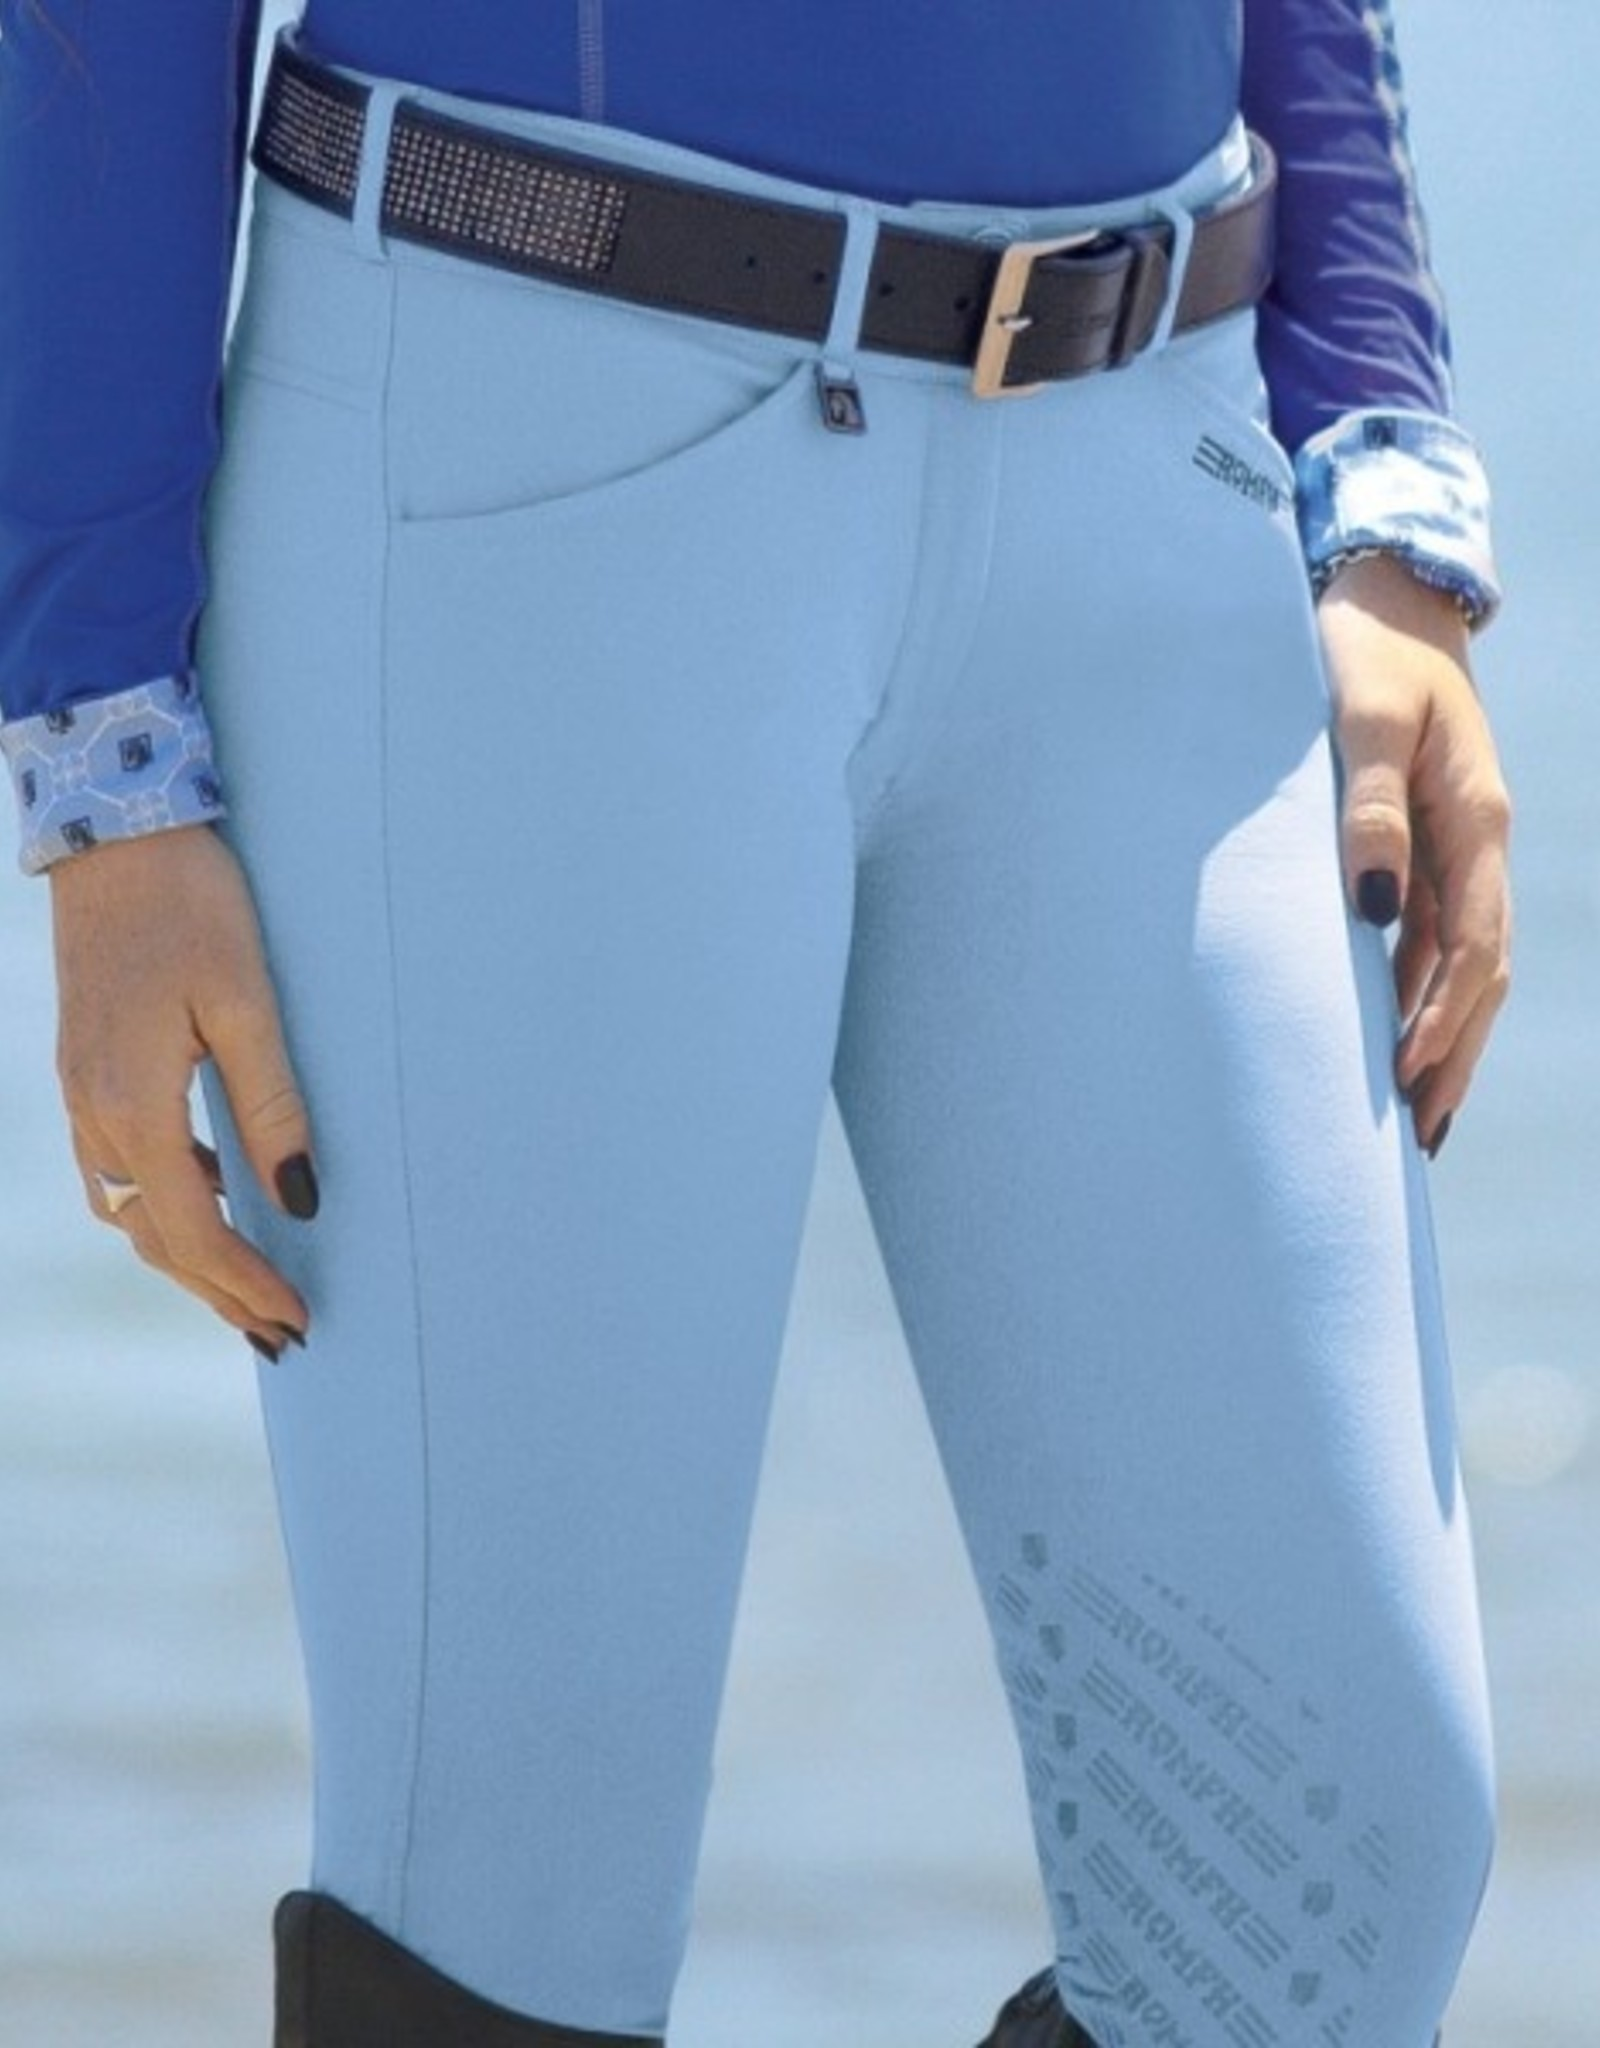 Romfh Gabriella Ladies' Knee Patch Breeches